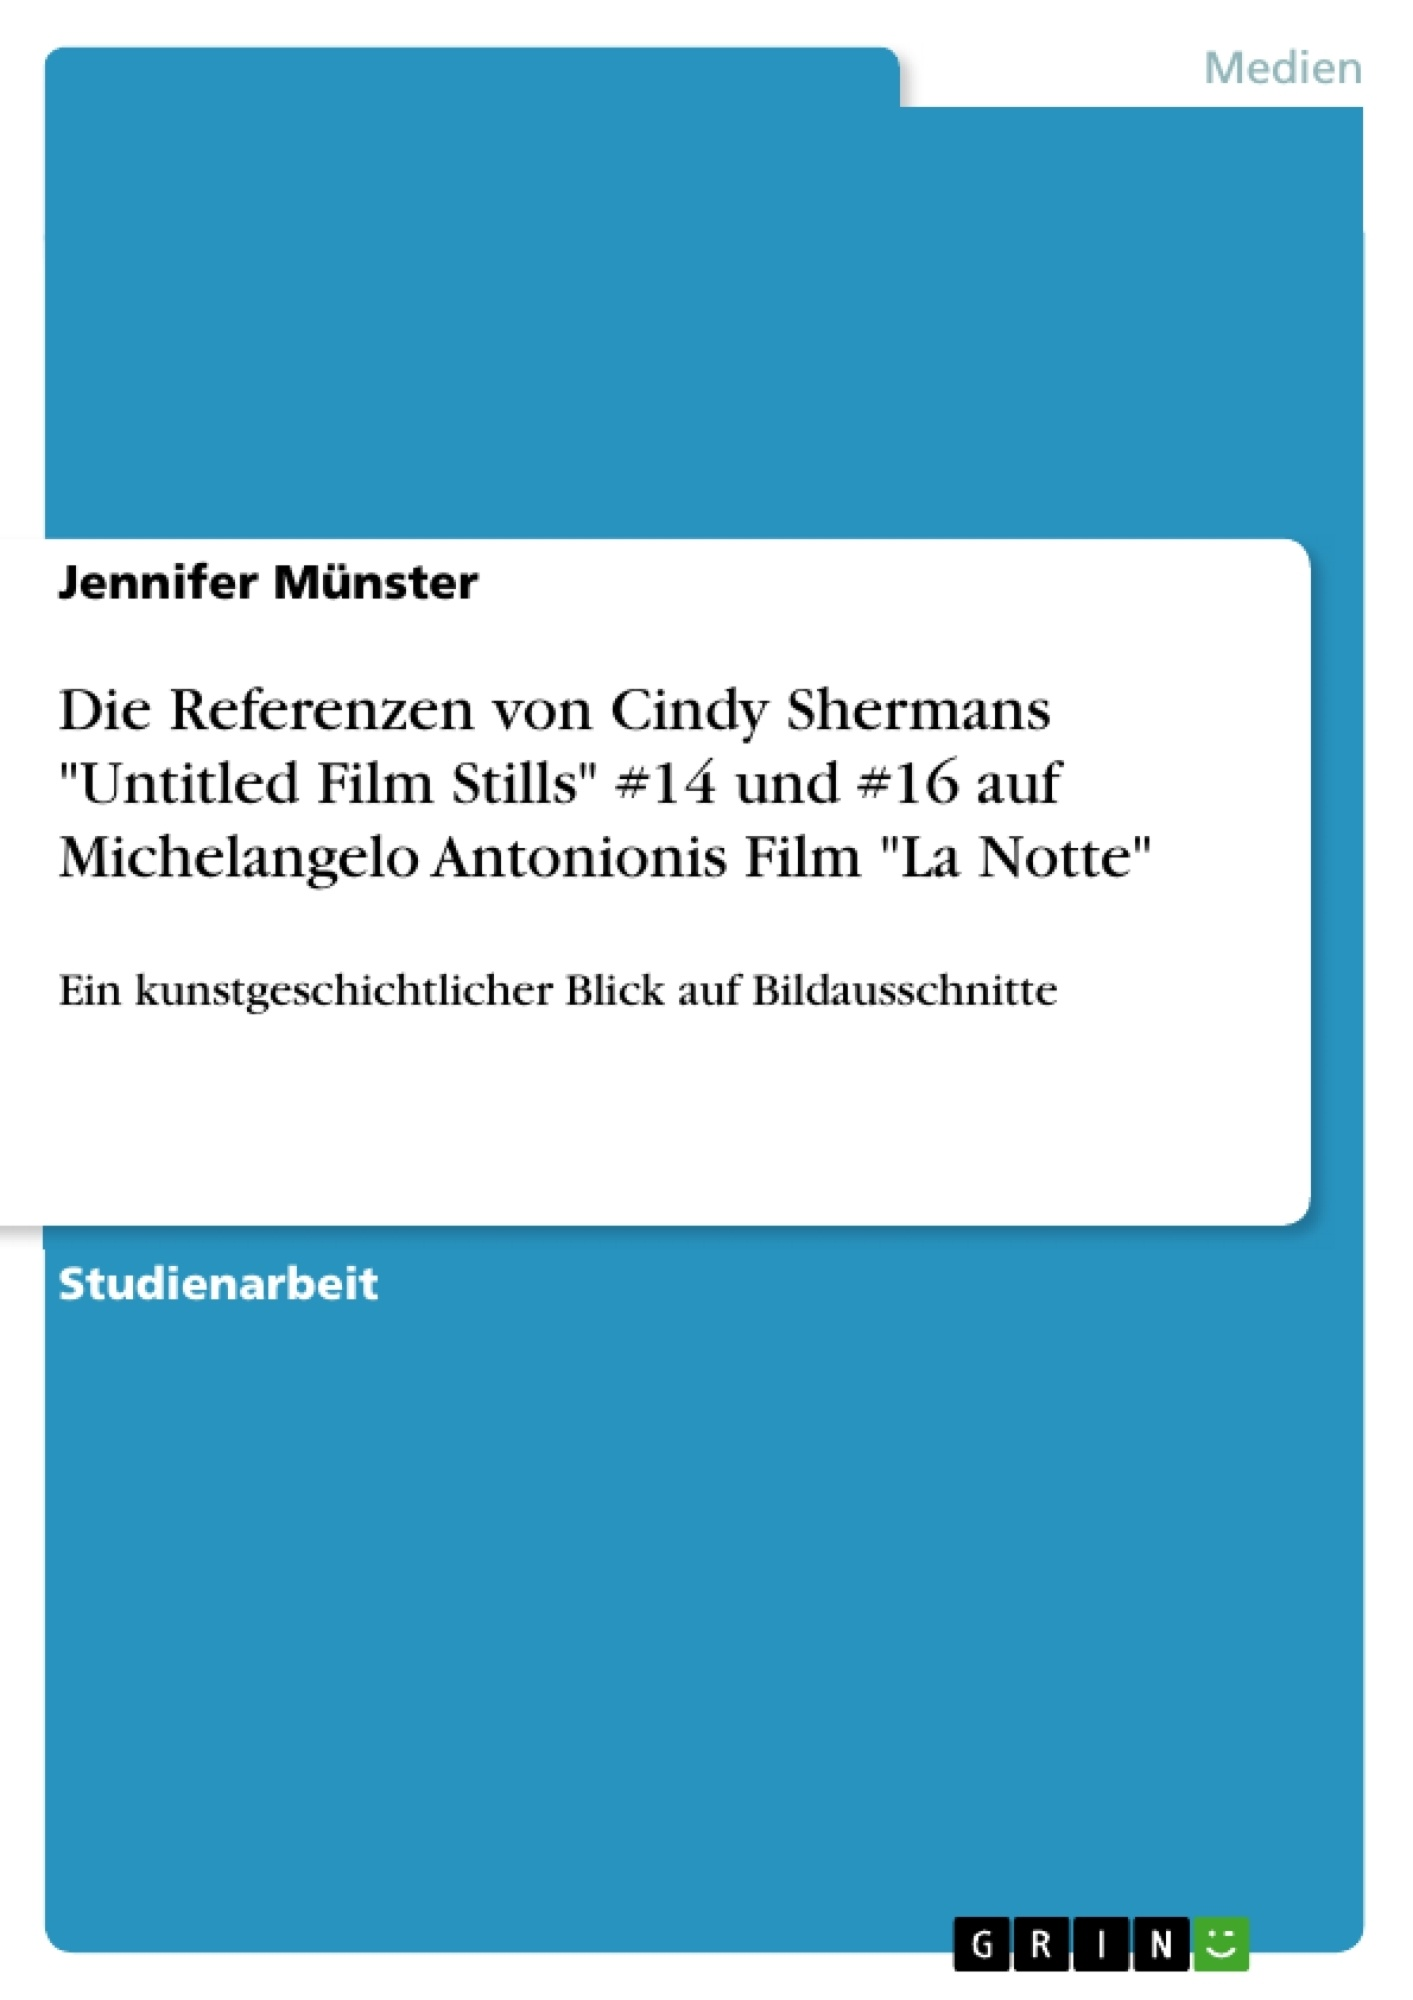 die referenzen von cindy shermans untitled film stills 14 und 16 auf michelangelo antonionis film la notte german edition